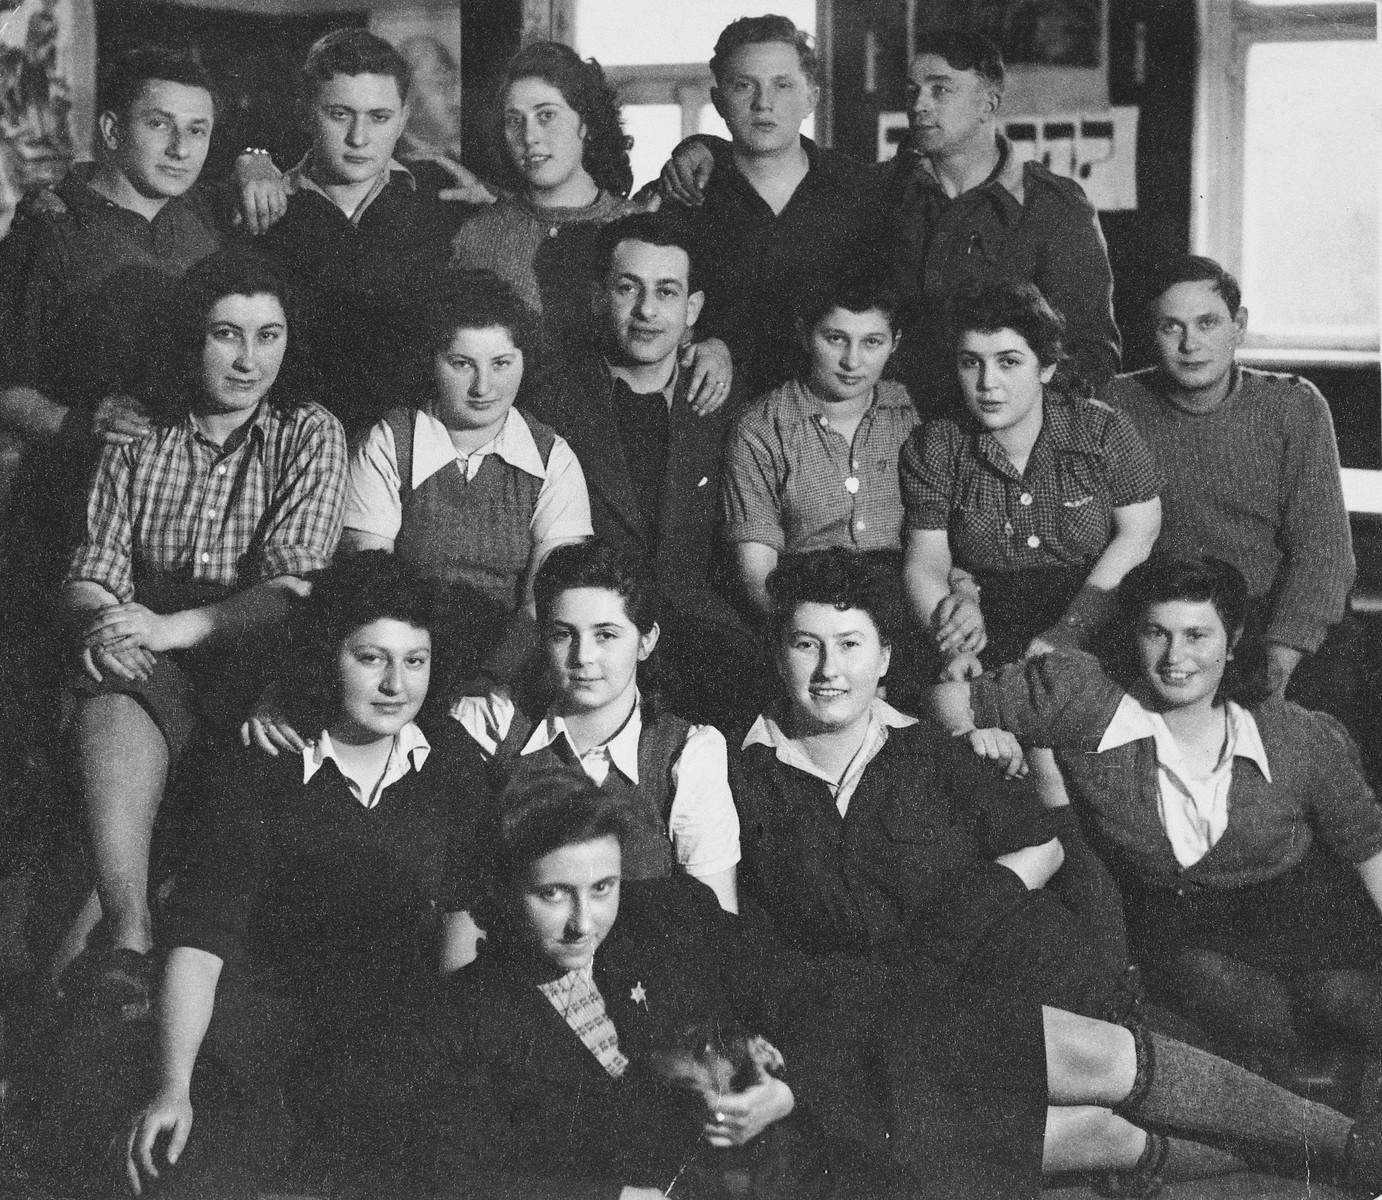 Group portrait of members of the Kibbutz Buchenwald hachshara (Zionist collective) in Geringshof, Germany.